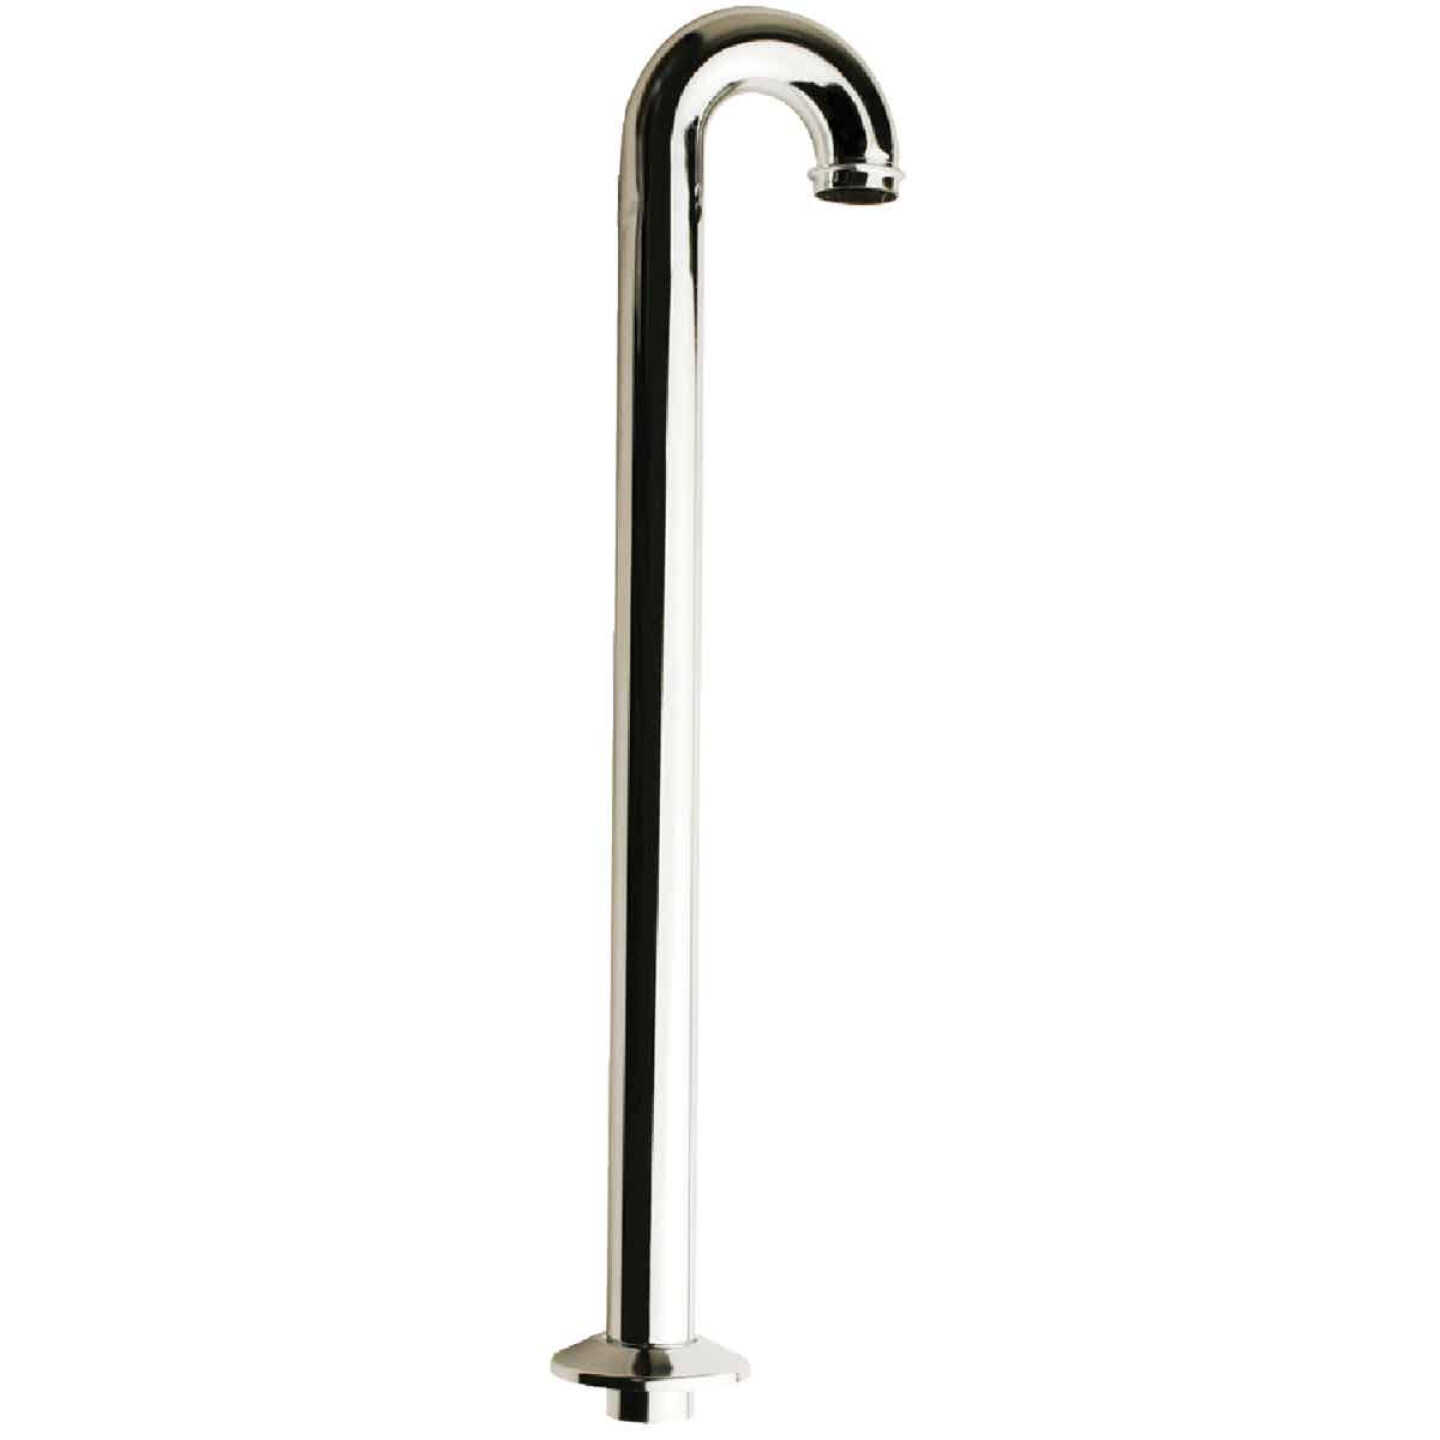 Do it 20-1/2 In. x 1-1/2 In. Chrome Plated Floor Tube Image 1